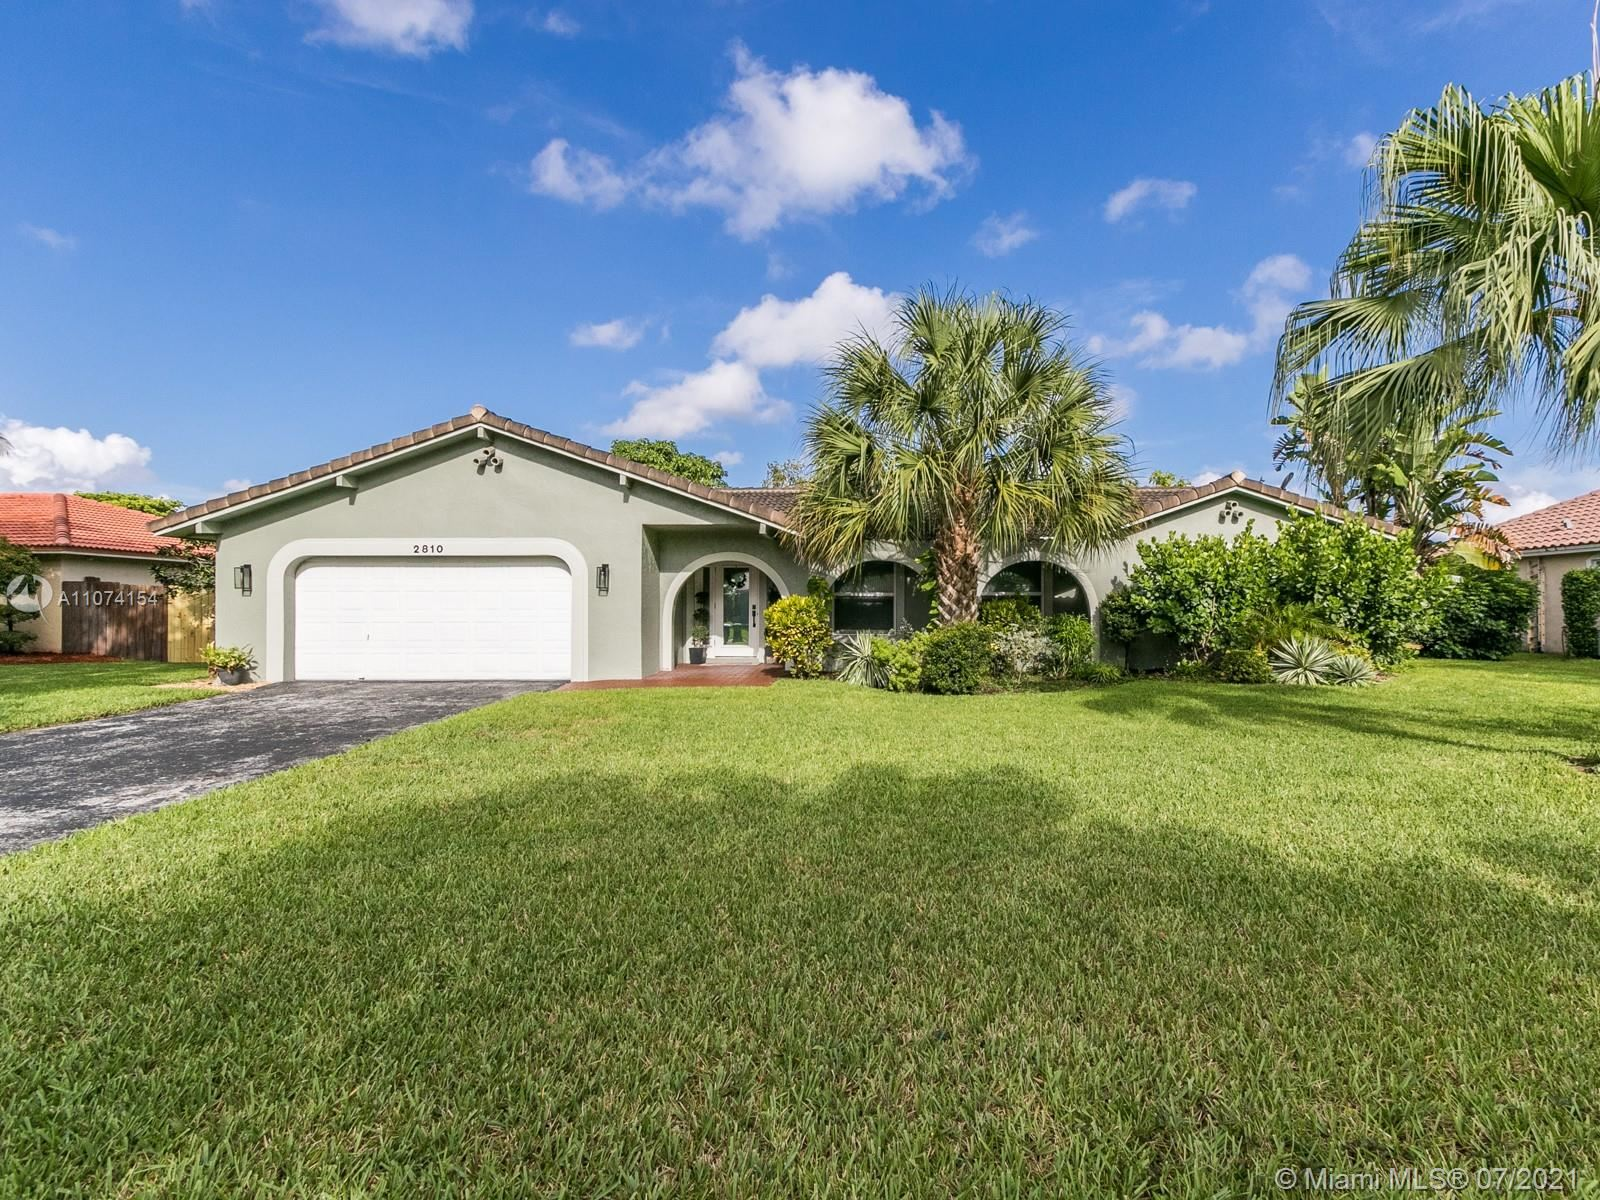 2810 NW 115th Ter, Coral Springs, FL 33065 - #: A11074154